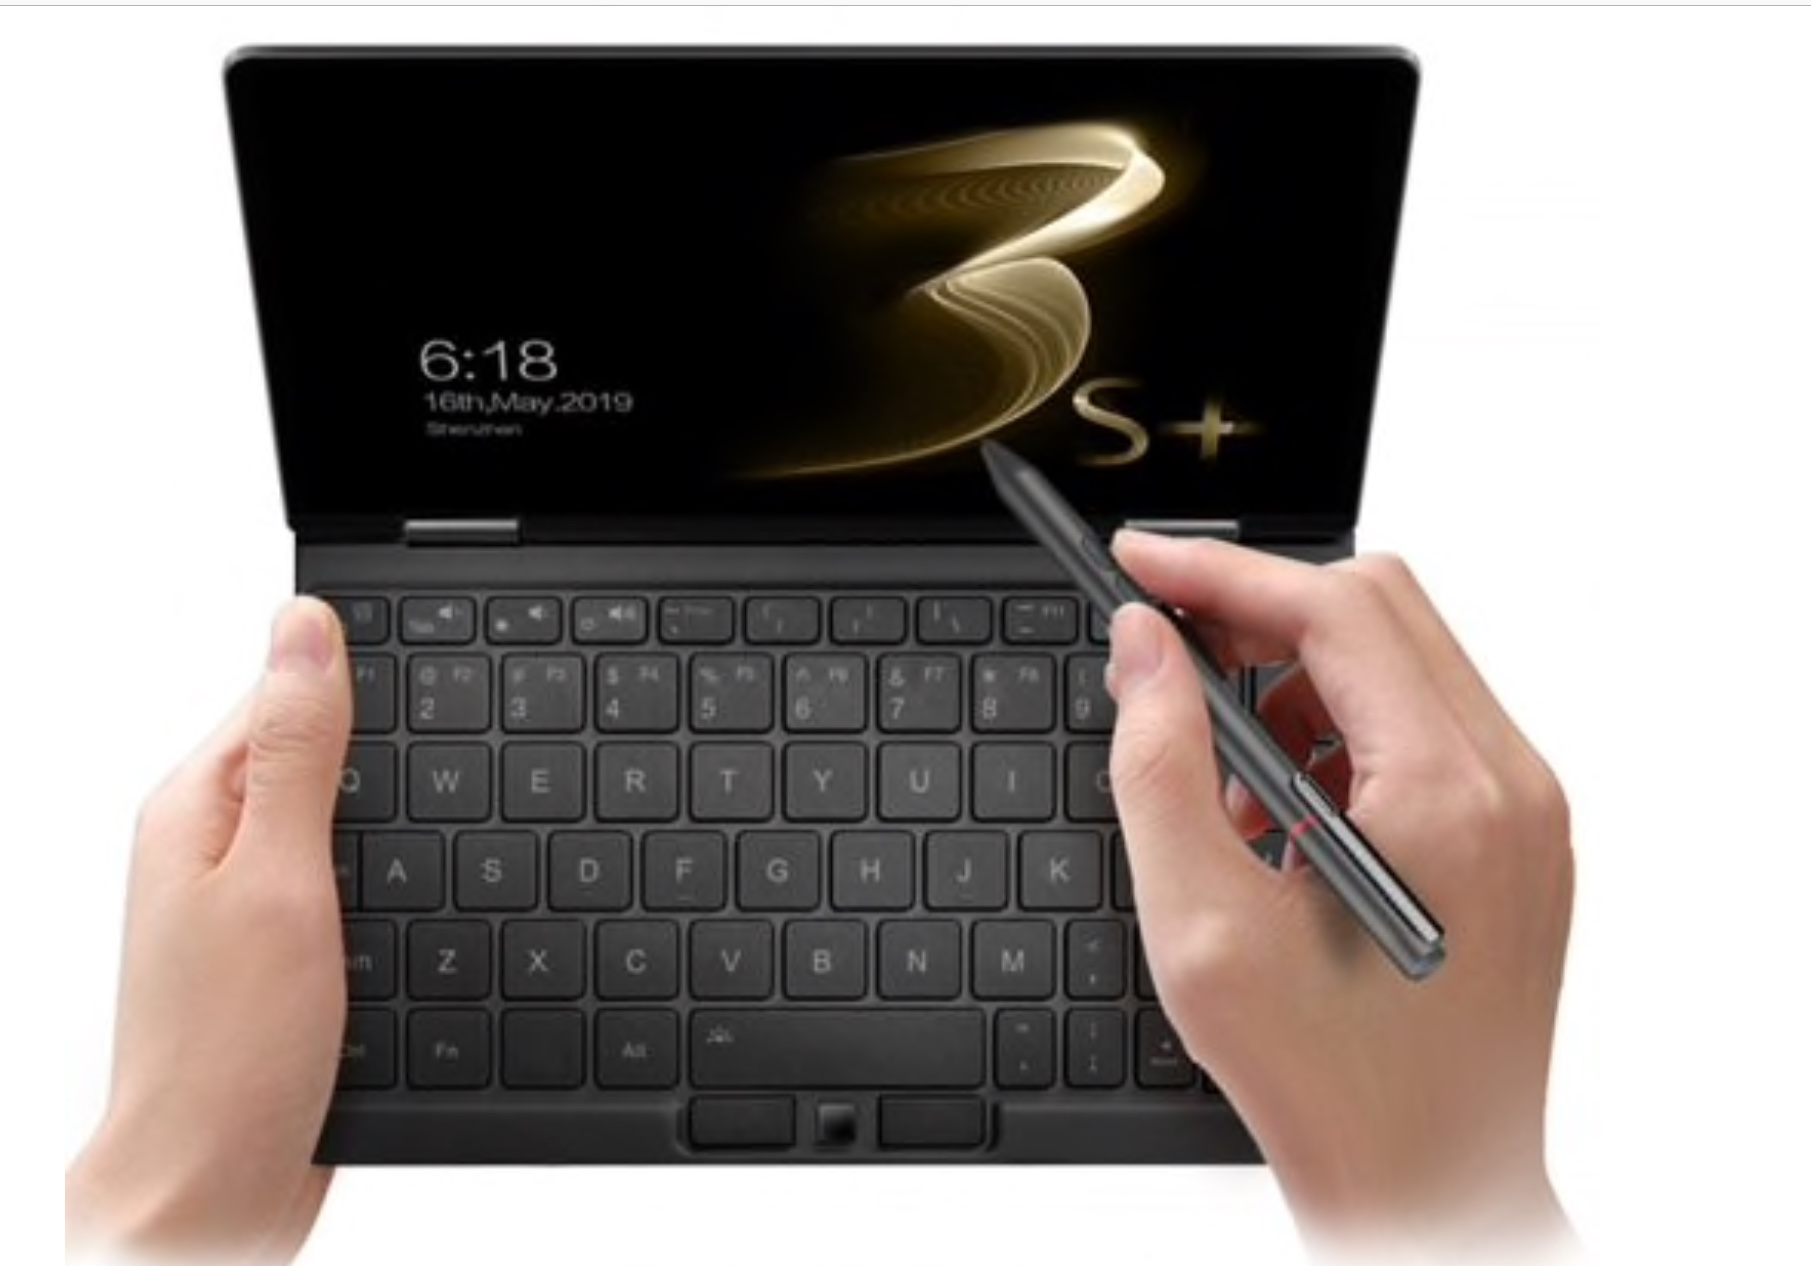 One Netbook OneMix 3S+ 360 8,4-inch Touch Screen Mini Laptop